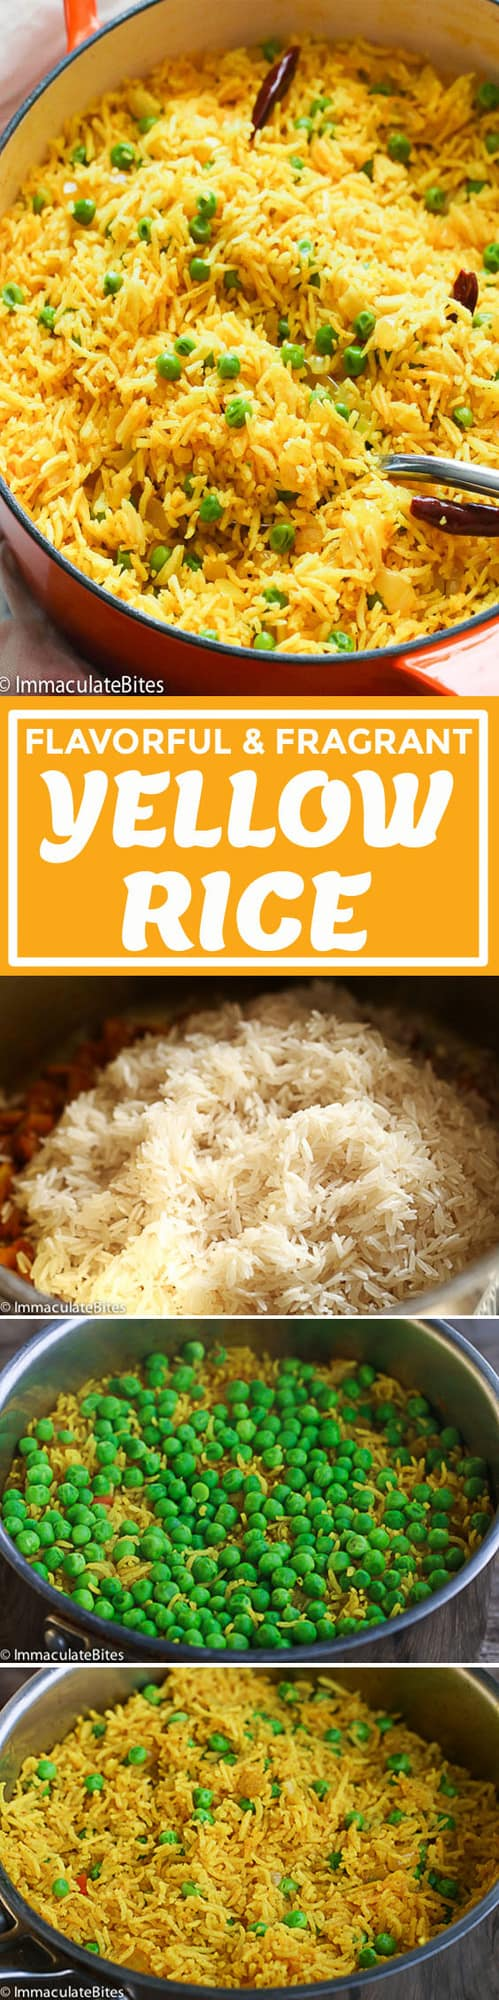 Yellow Rice.